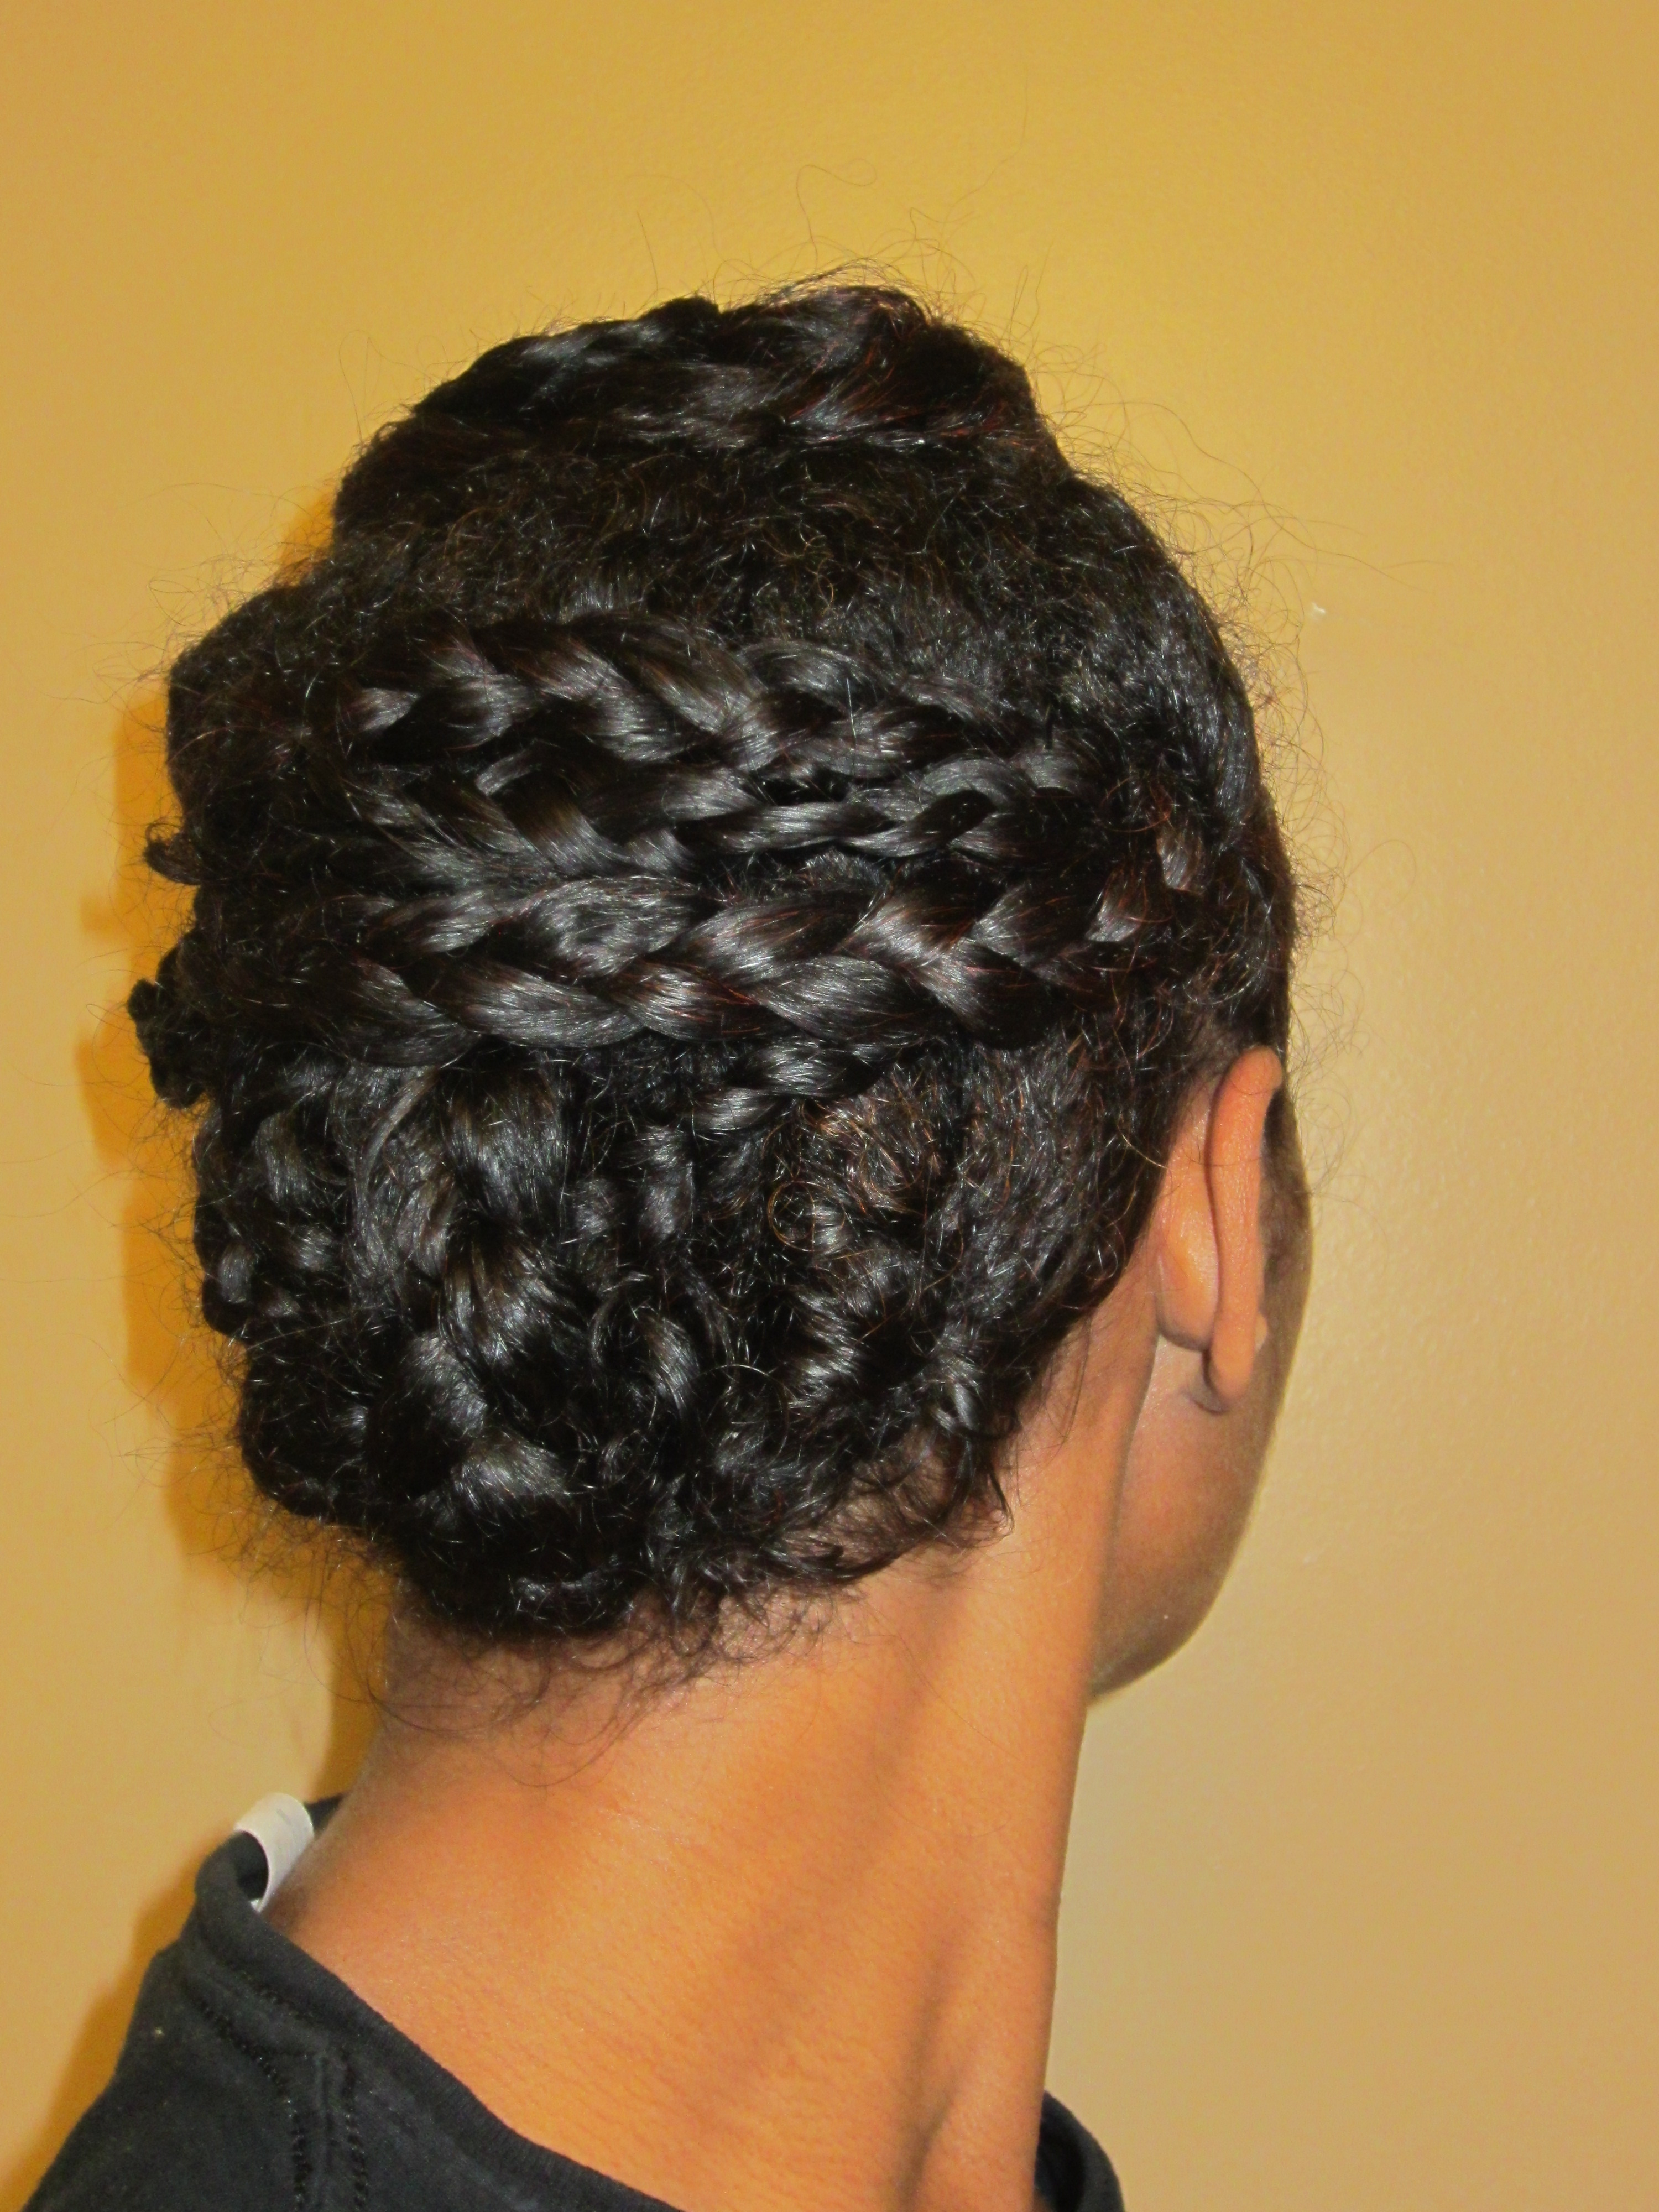 how to style your hair for twists and braids hairscapades page 2 4241